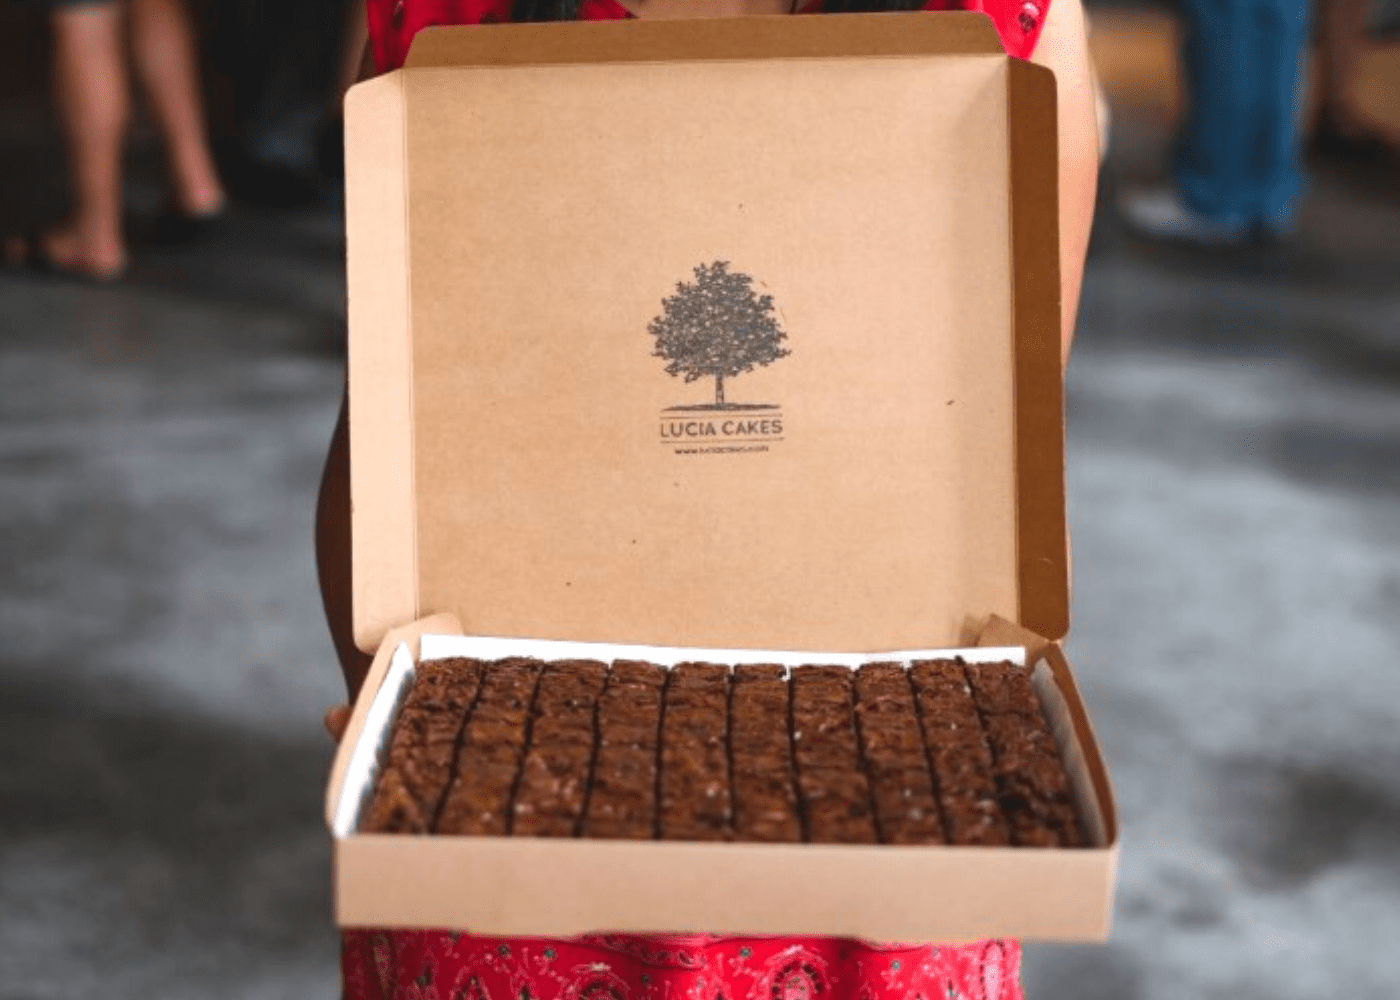 Choc it up to a sweet tooth: Lucia Cakes' addictive brownies have our vote